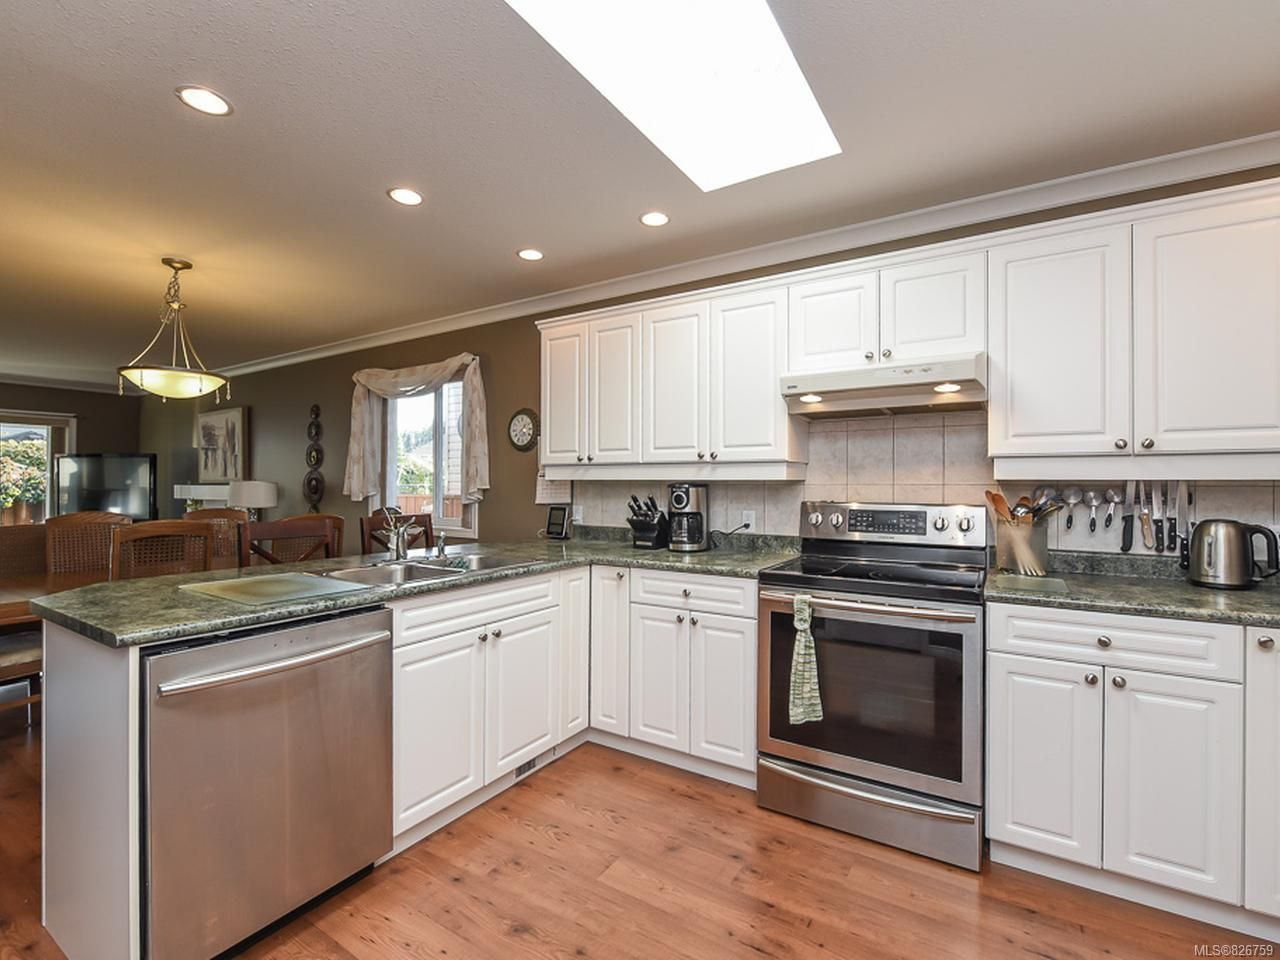 Photo 10: Photos: 2165 Stirling Cres in COURTENAY: CV Courtenay East House for sale (Comox Valley)  : MLS®# 826759